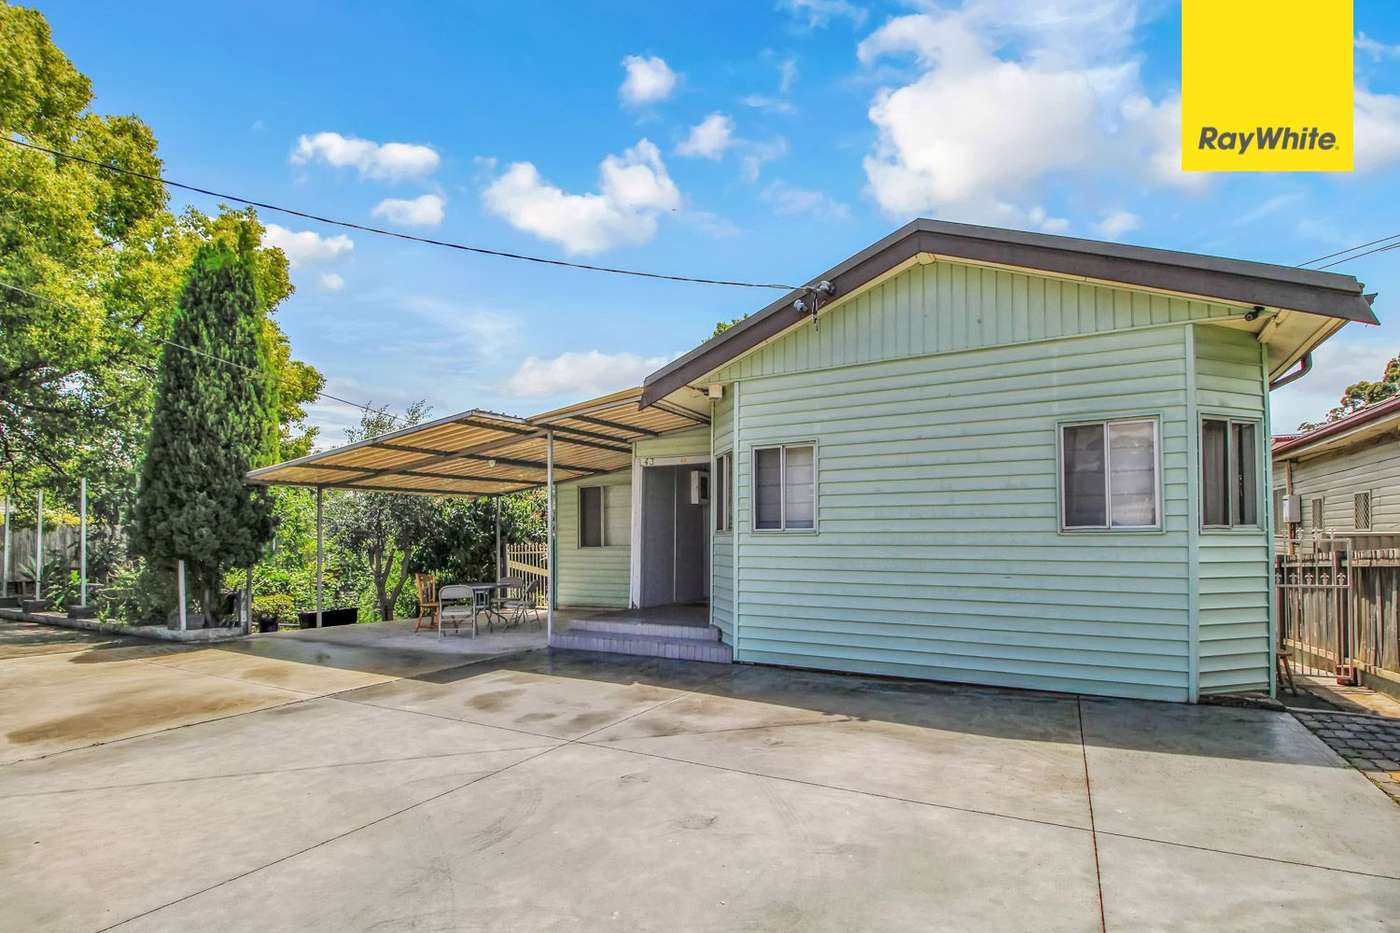 Main view of Homely house listing, 43 Patten Avenue, Merrylands, NSW 2160